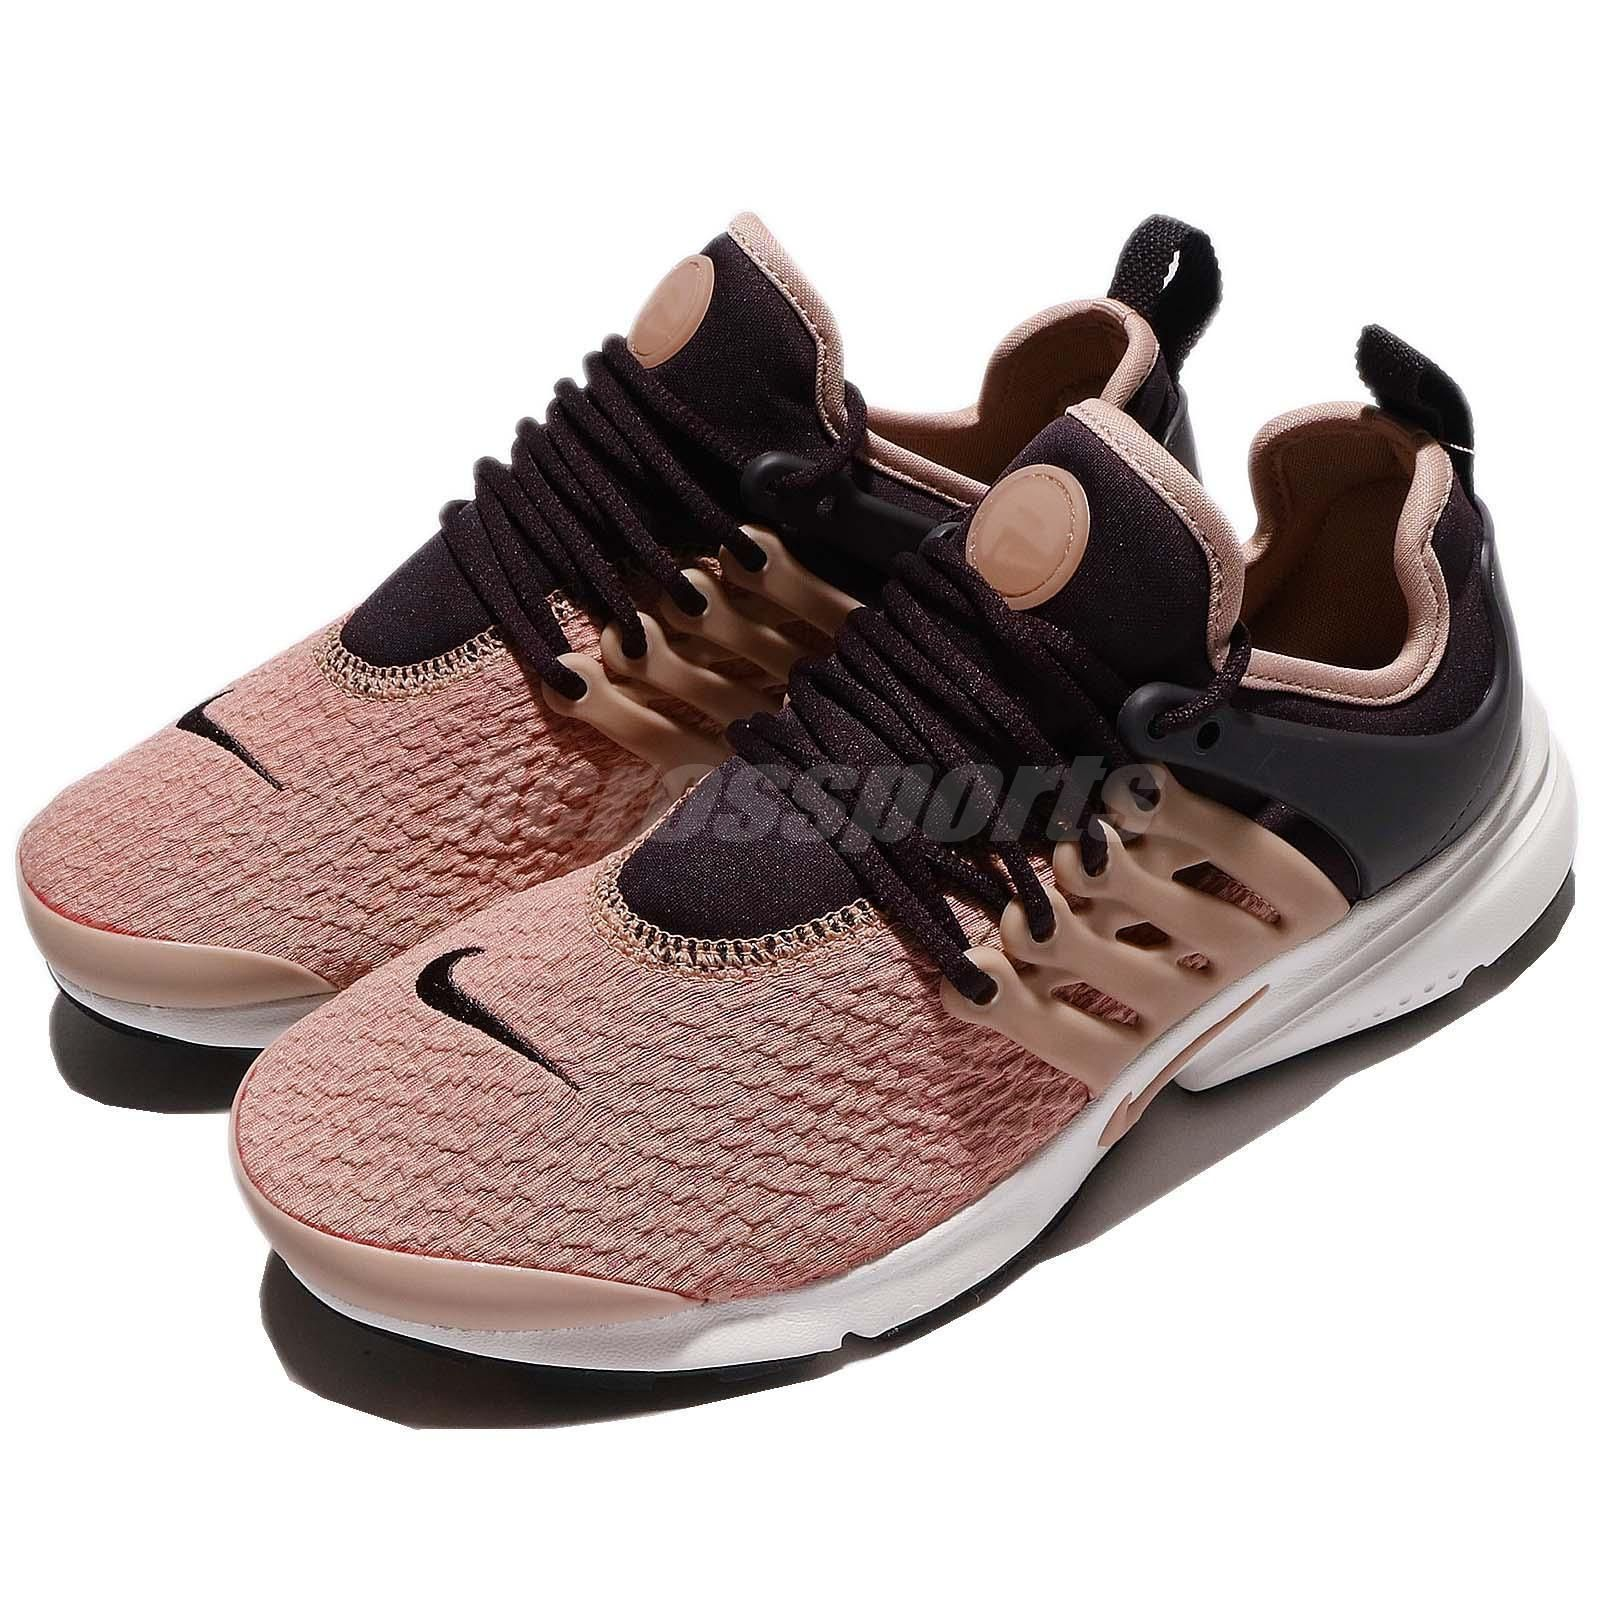 Wmns Nike Air Presto Port Wine Particle Pink Women Shoes Sneakers 878068-604